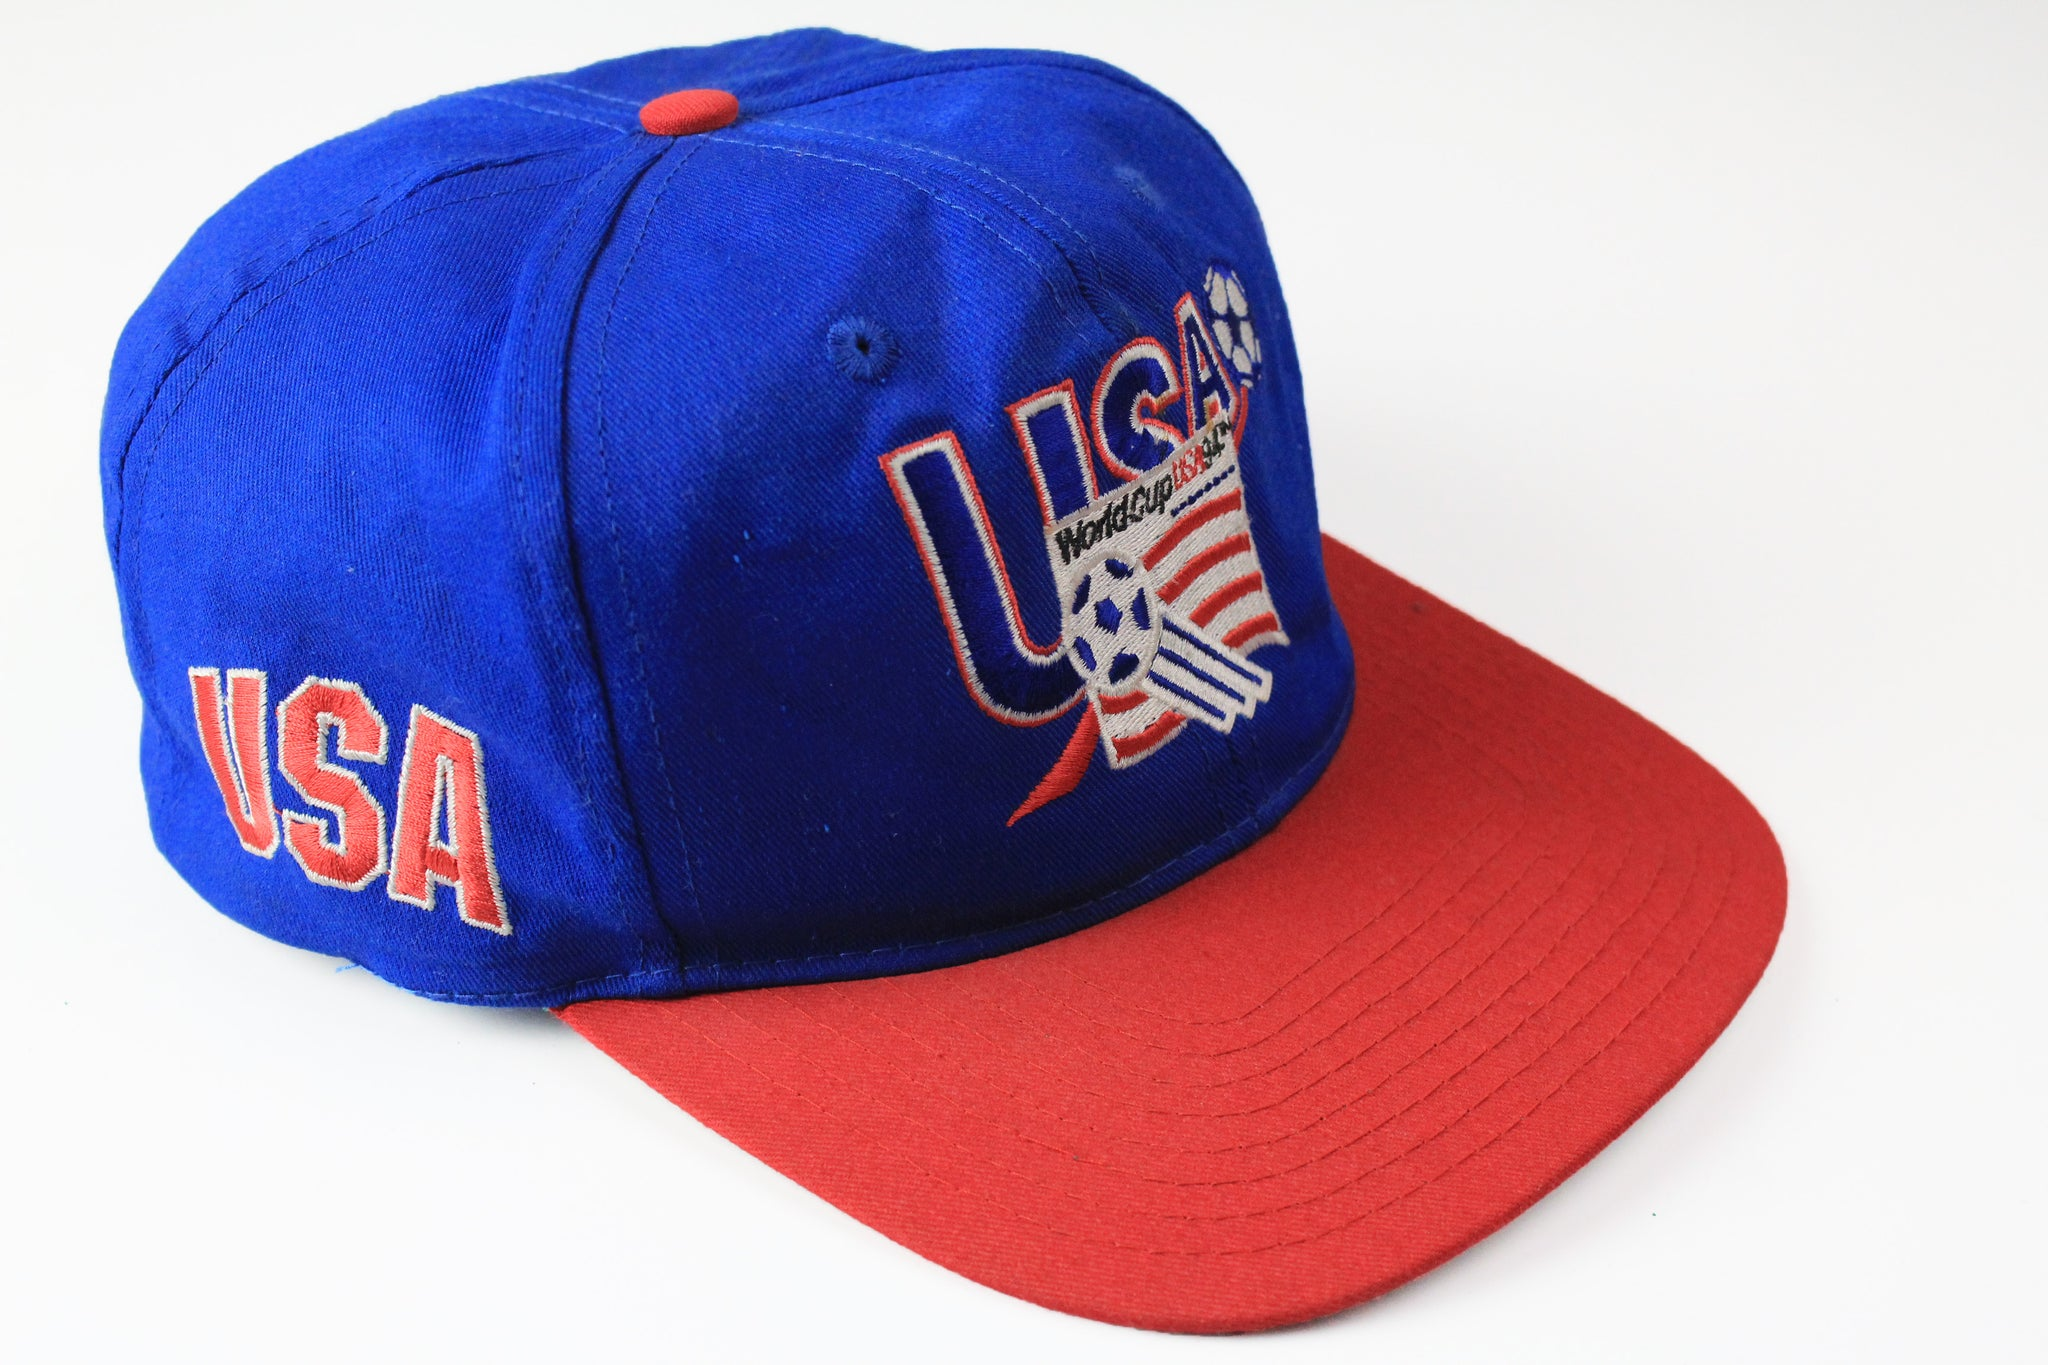 Vintage World Cup USA 94 Cap blue red big logo 90s sport football hat